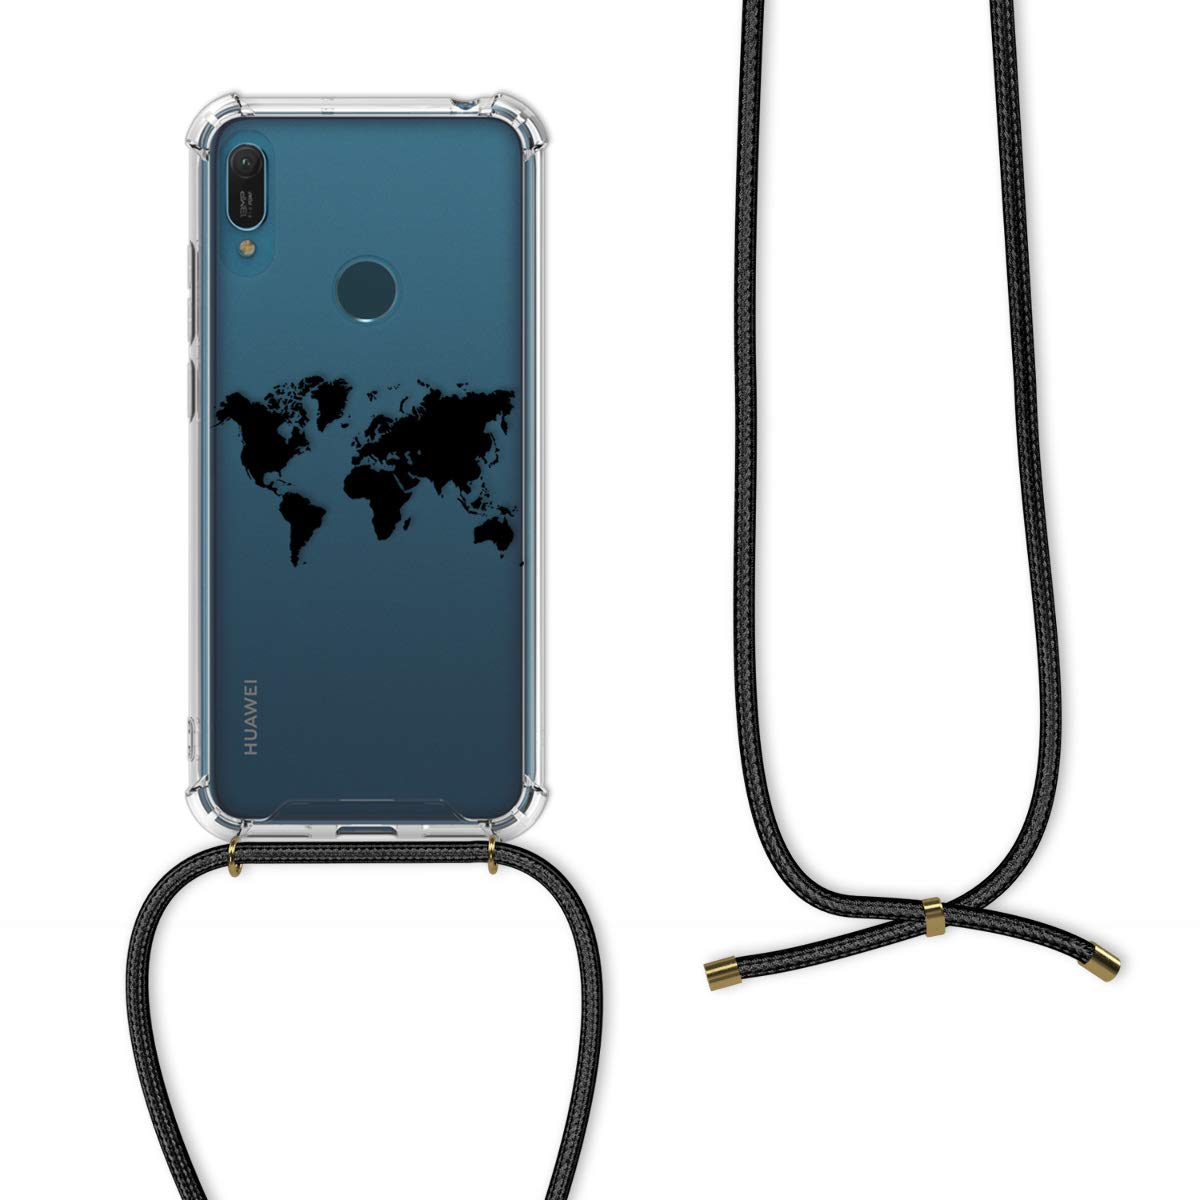 2019 - Coque pour Huawei Y6 - Housse en Silicone avec Collier Transparent 2019 kwmobile Coque Huawei Y6